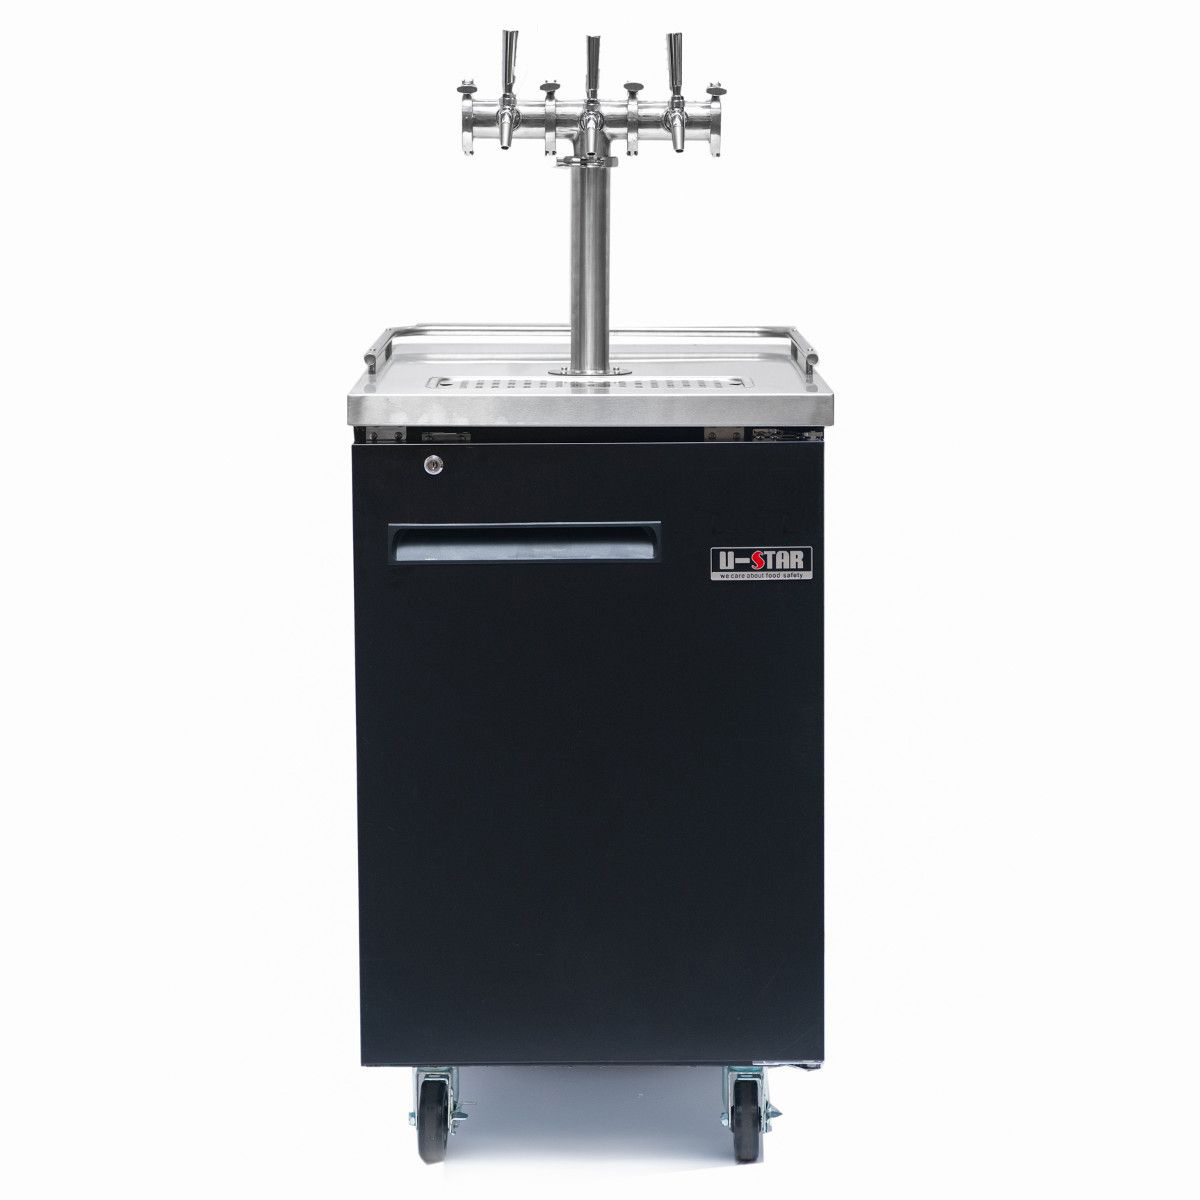 Kegmaster Grand Deluxe 60 - Dimensions: (W*D*H) 596 x 772 x 905 (mm) Height including castors: 1005 mmcommercial grade refrigerator with holding capacity = 4 x 19.5 litre kegs or 1 x 50 litre keg$950 ex gst and requires additional tap system below to be added for full functioning or/$10 ex gst per week rental billed monthly